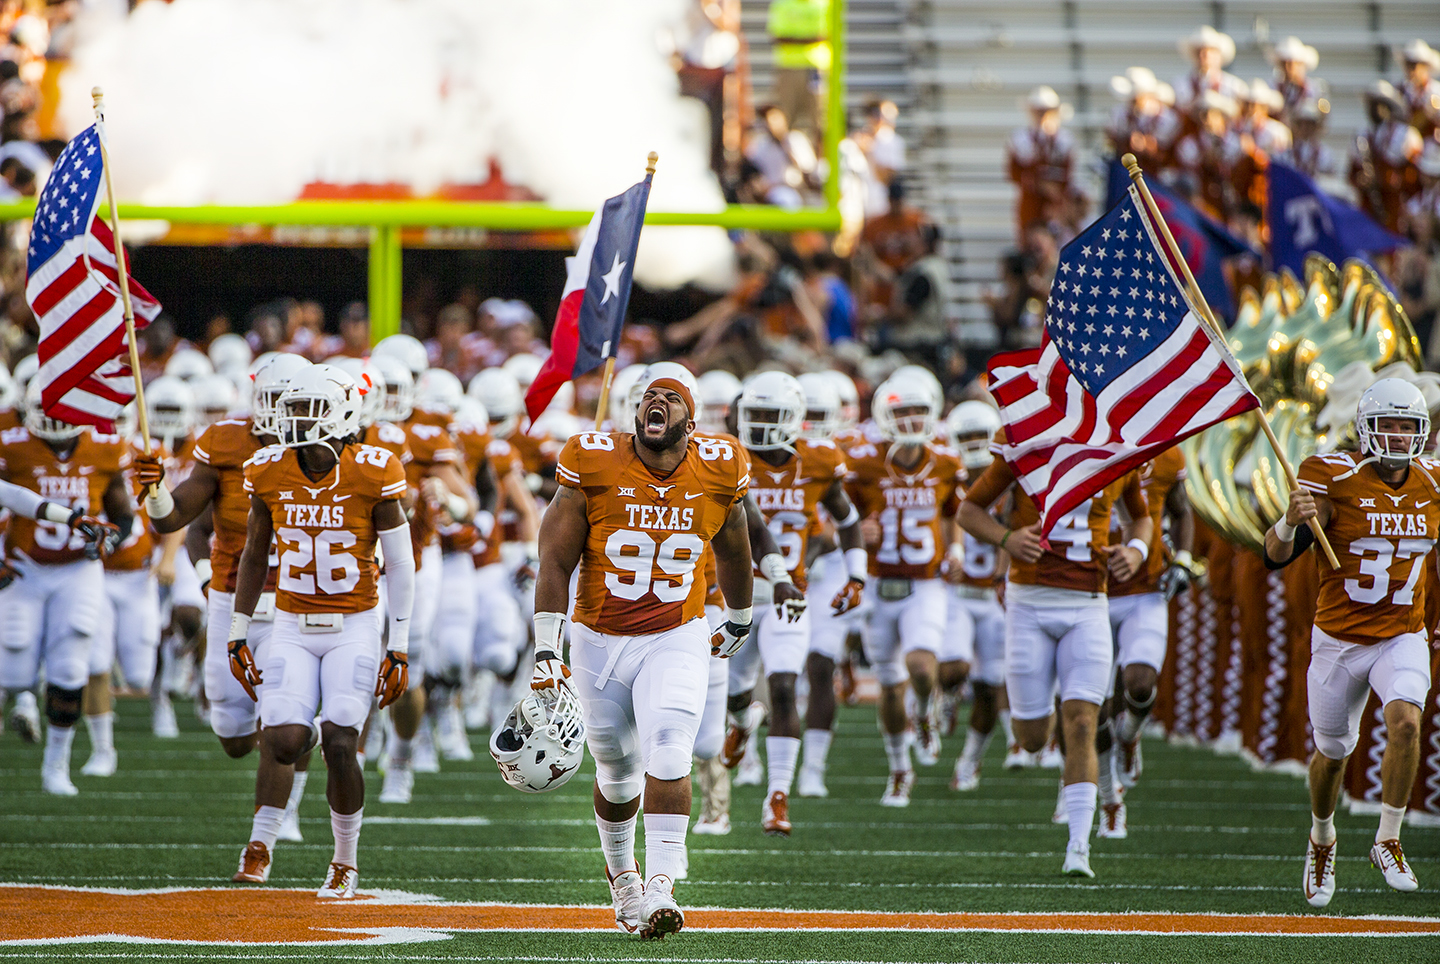 A Look At The Texas Longhorns On Eve Of National Signing Day